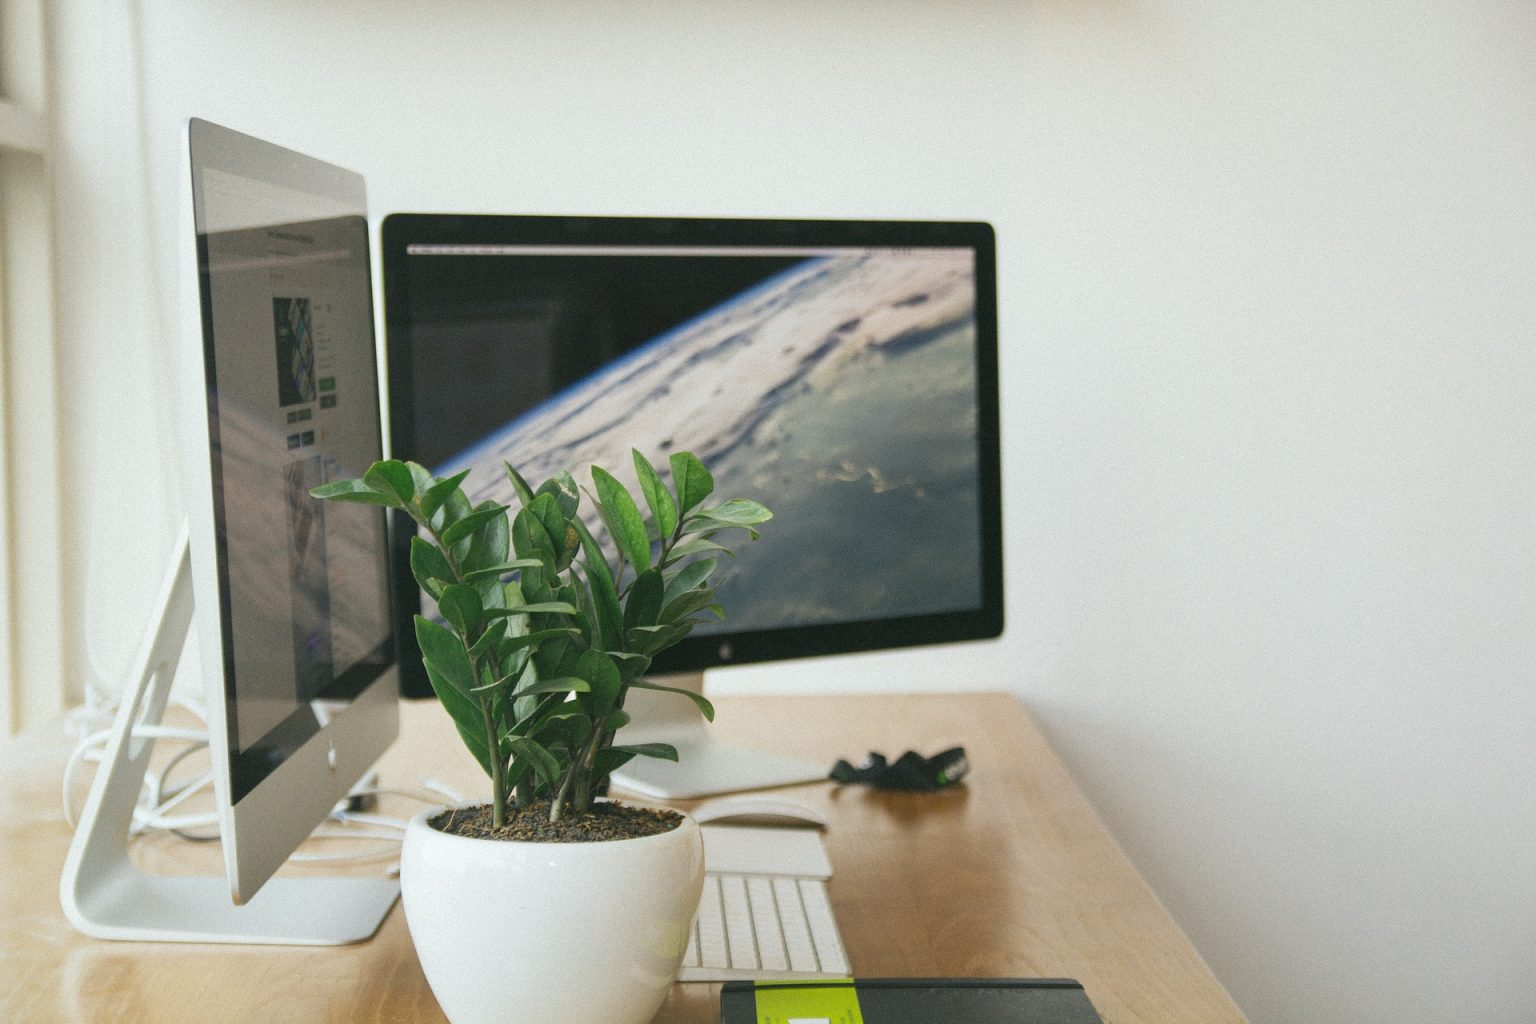 Apple iMac sitting on desk with green plant